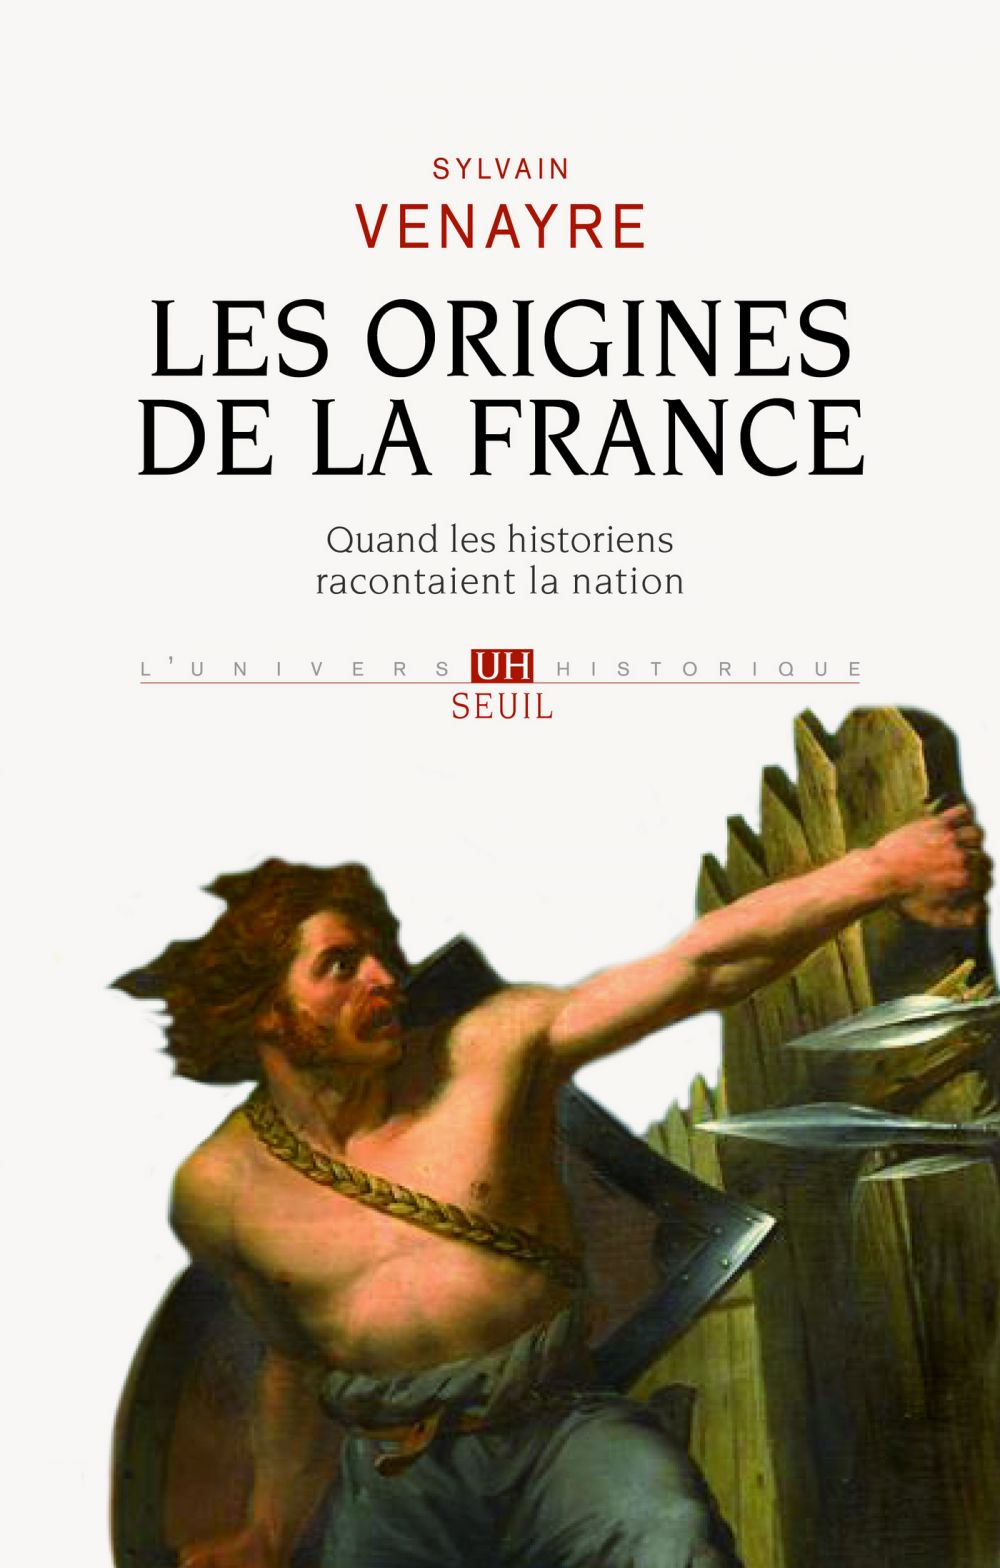 Les origines de la France - Quand les historiens racontaient la nation